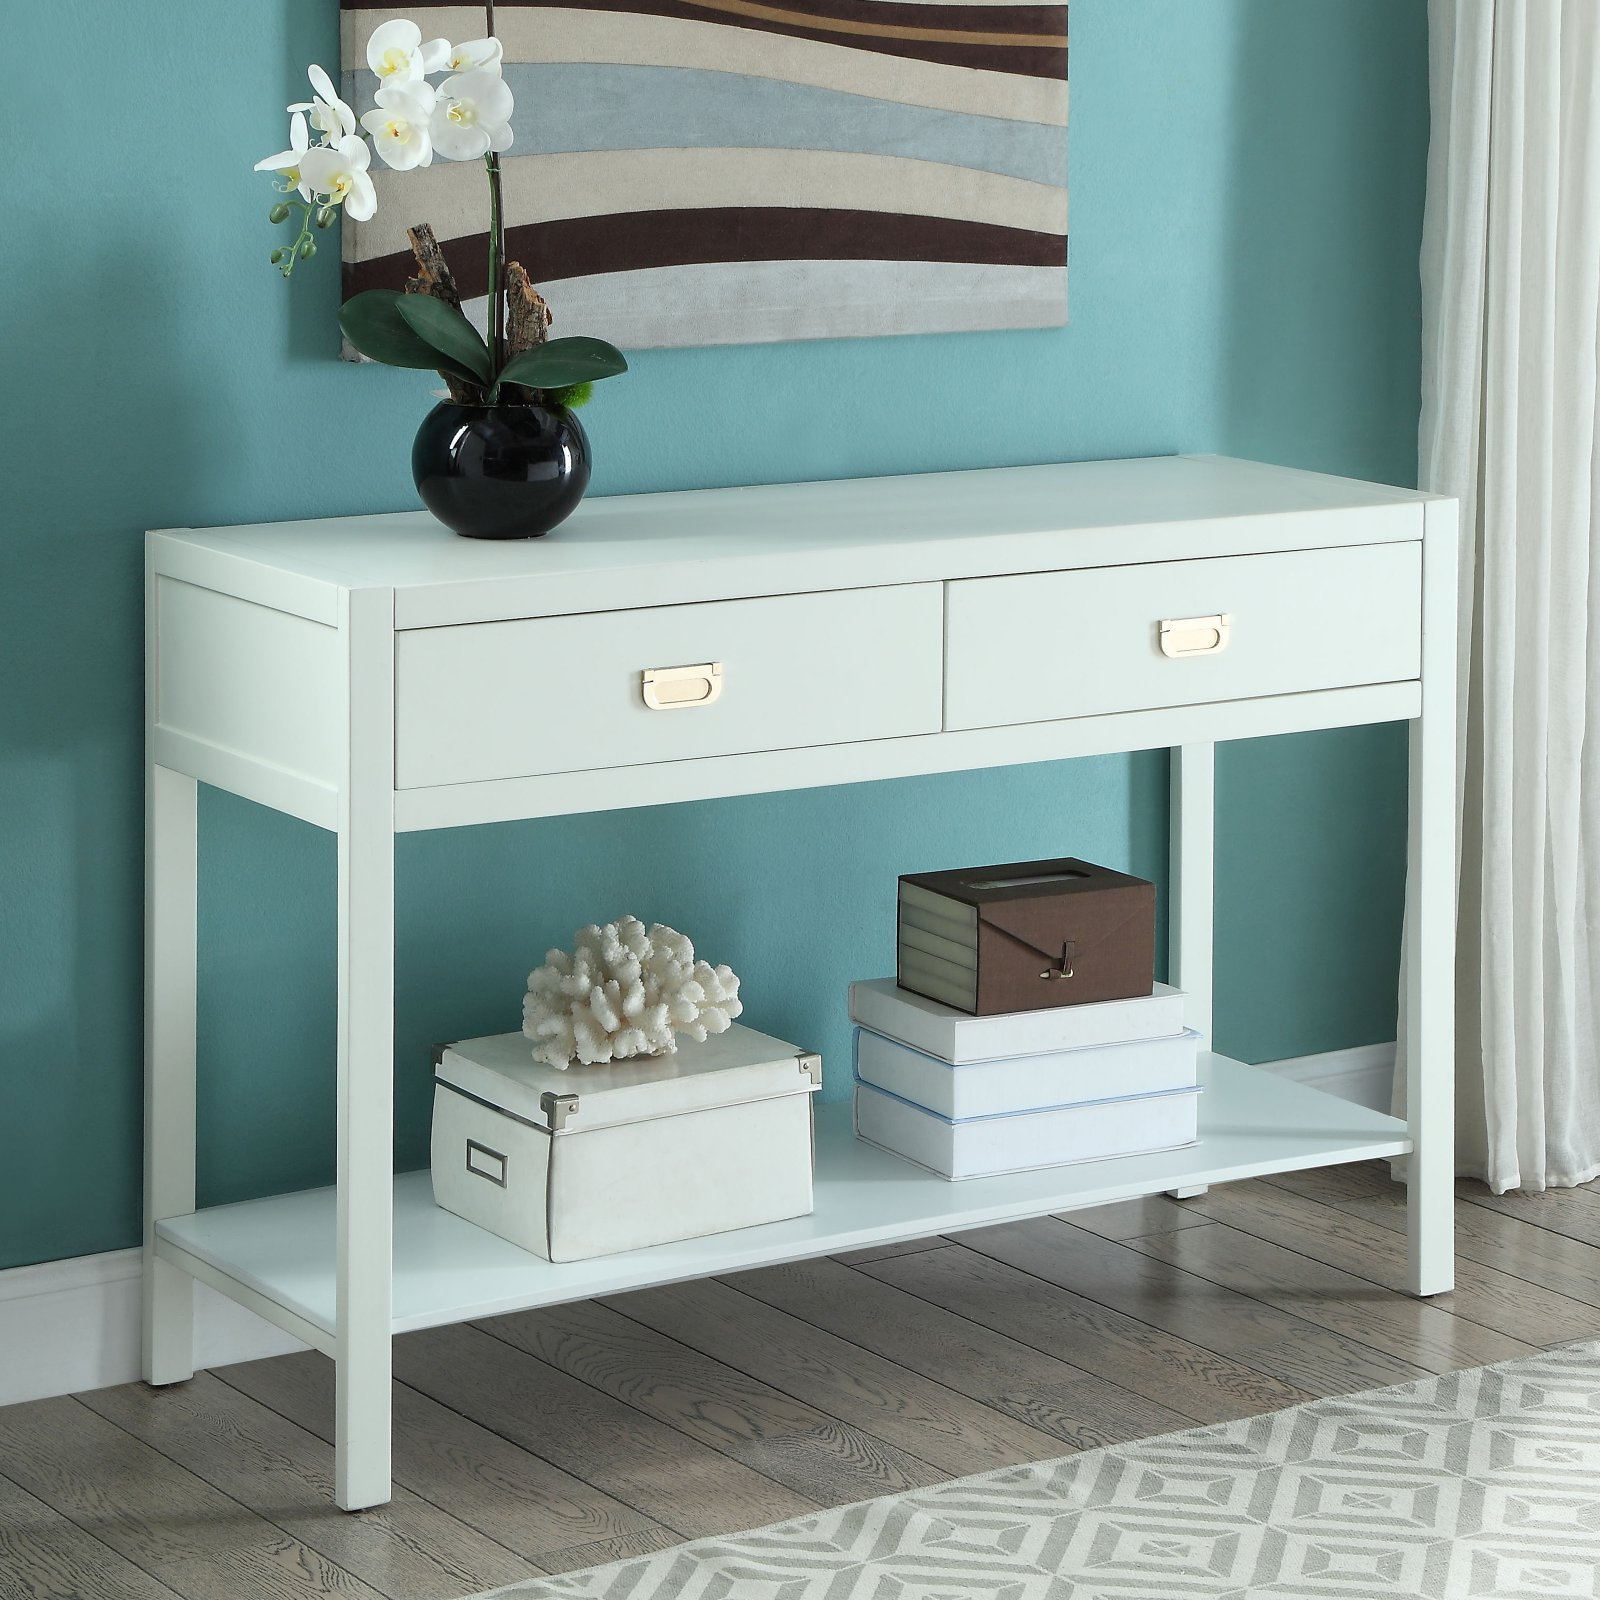 Linon Peggy Console Table, White, 2 Drawers And 1 Shelf